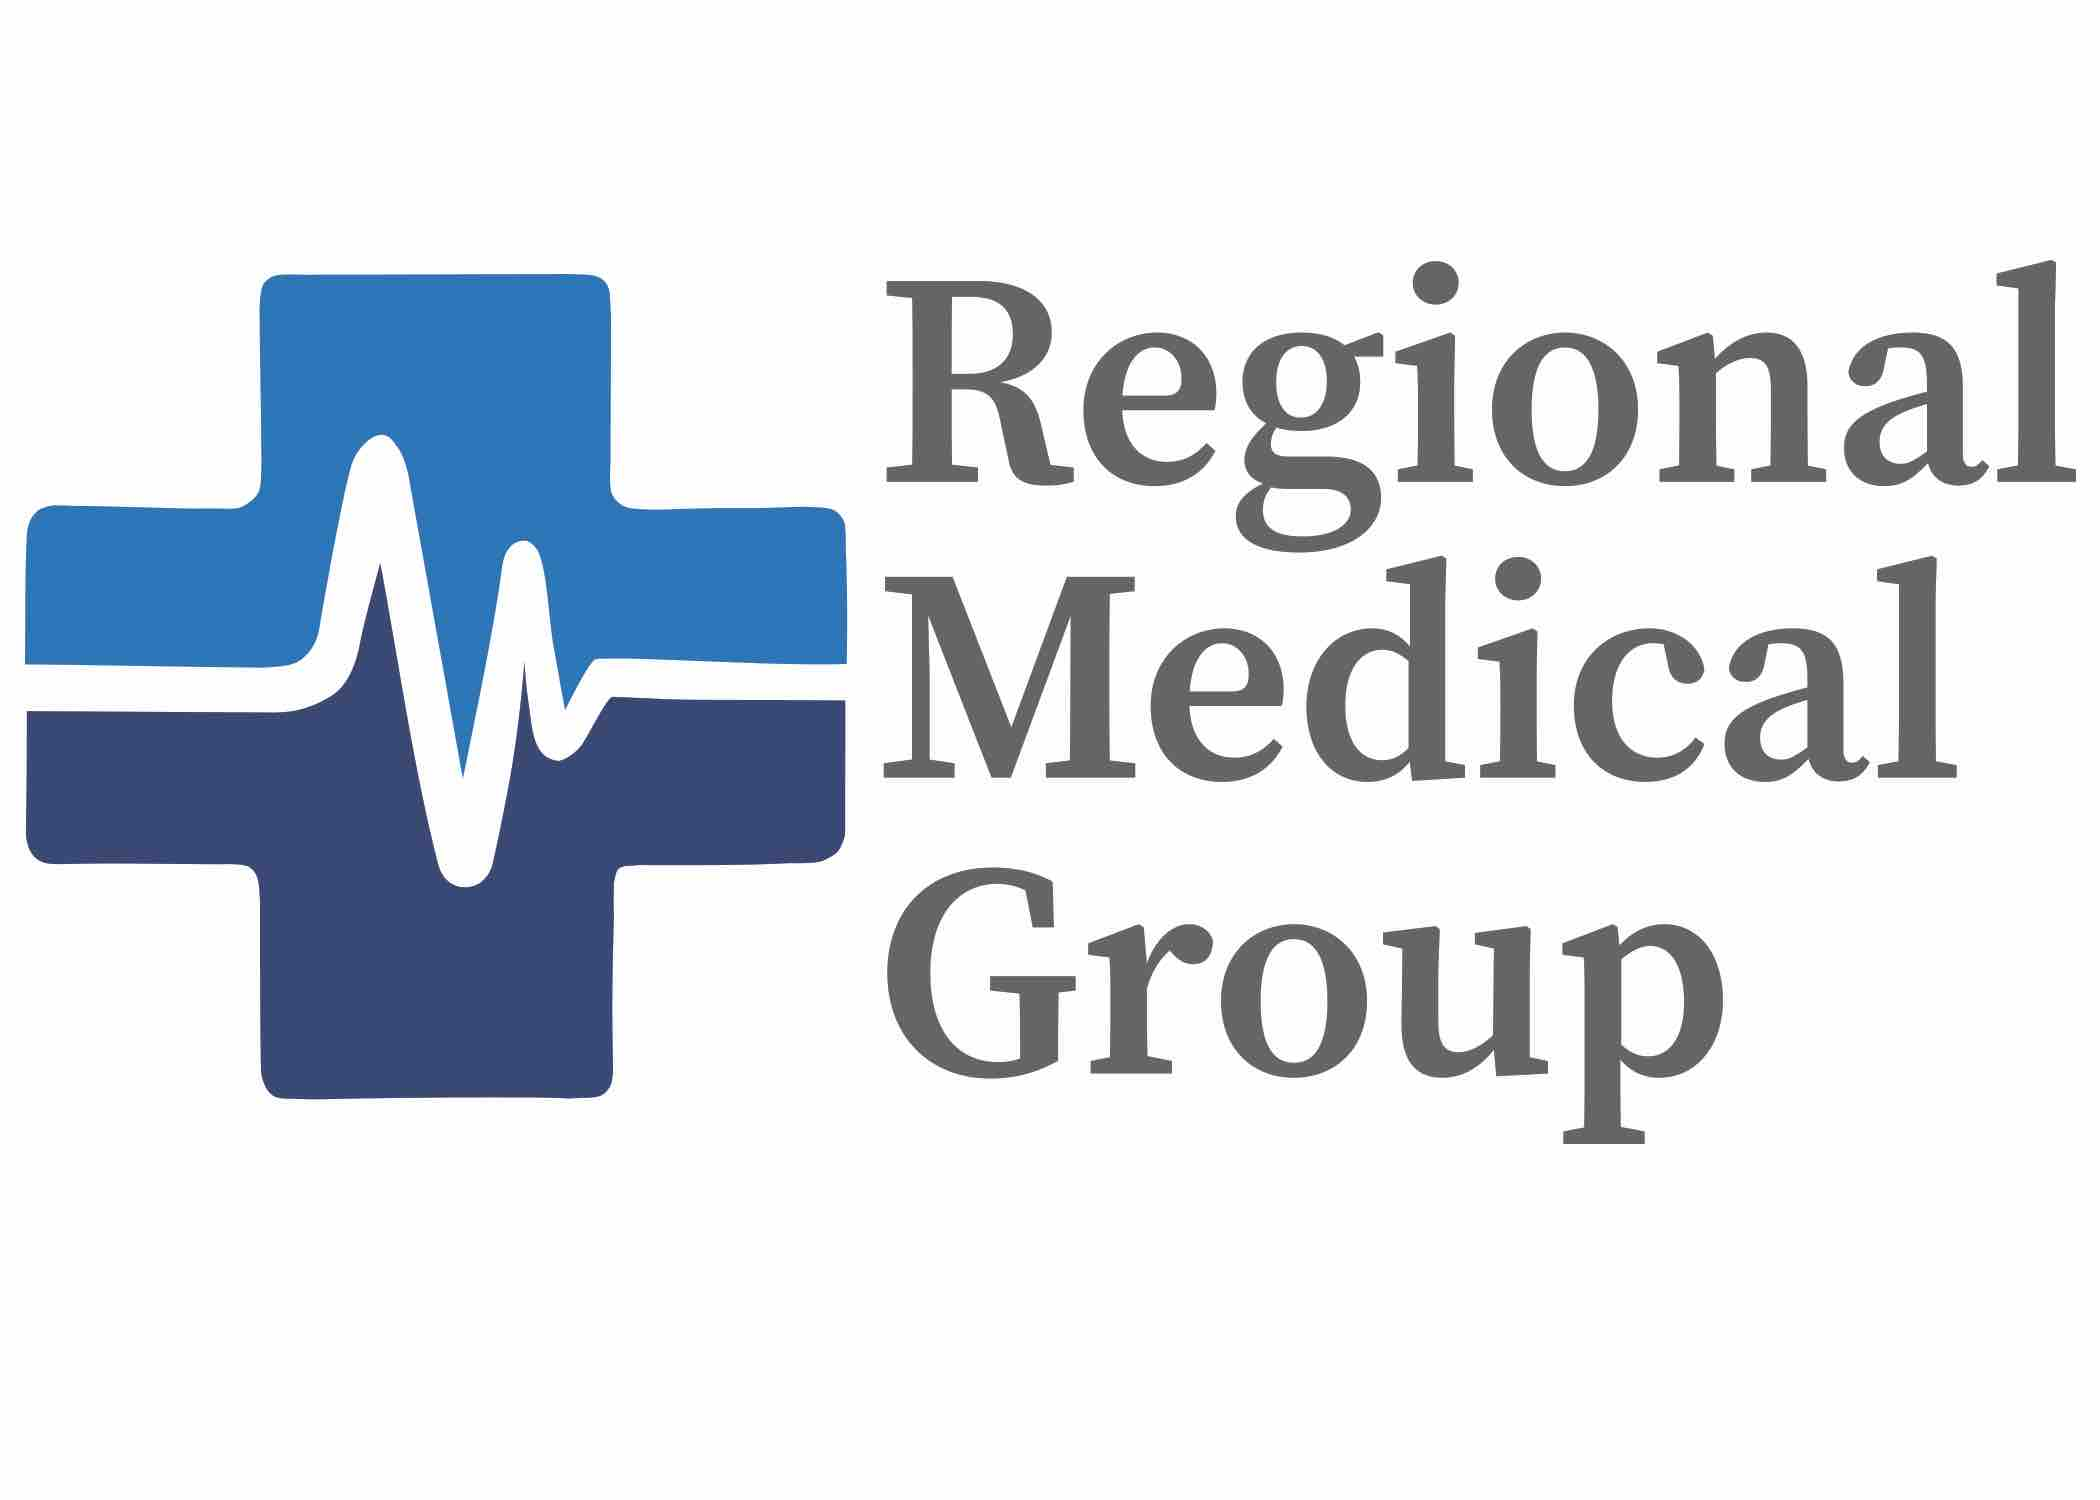 Regional Medical Group Announces Newly Renovated Medical Center Relocation in Columbus, Georgia